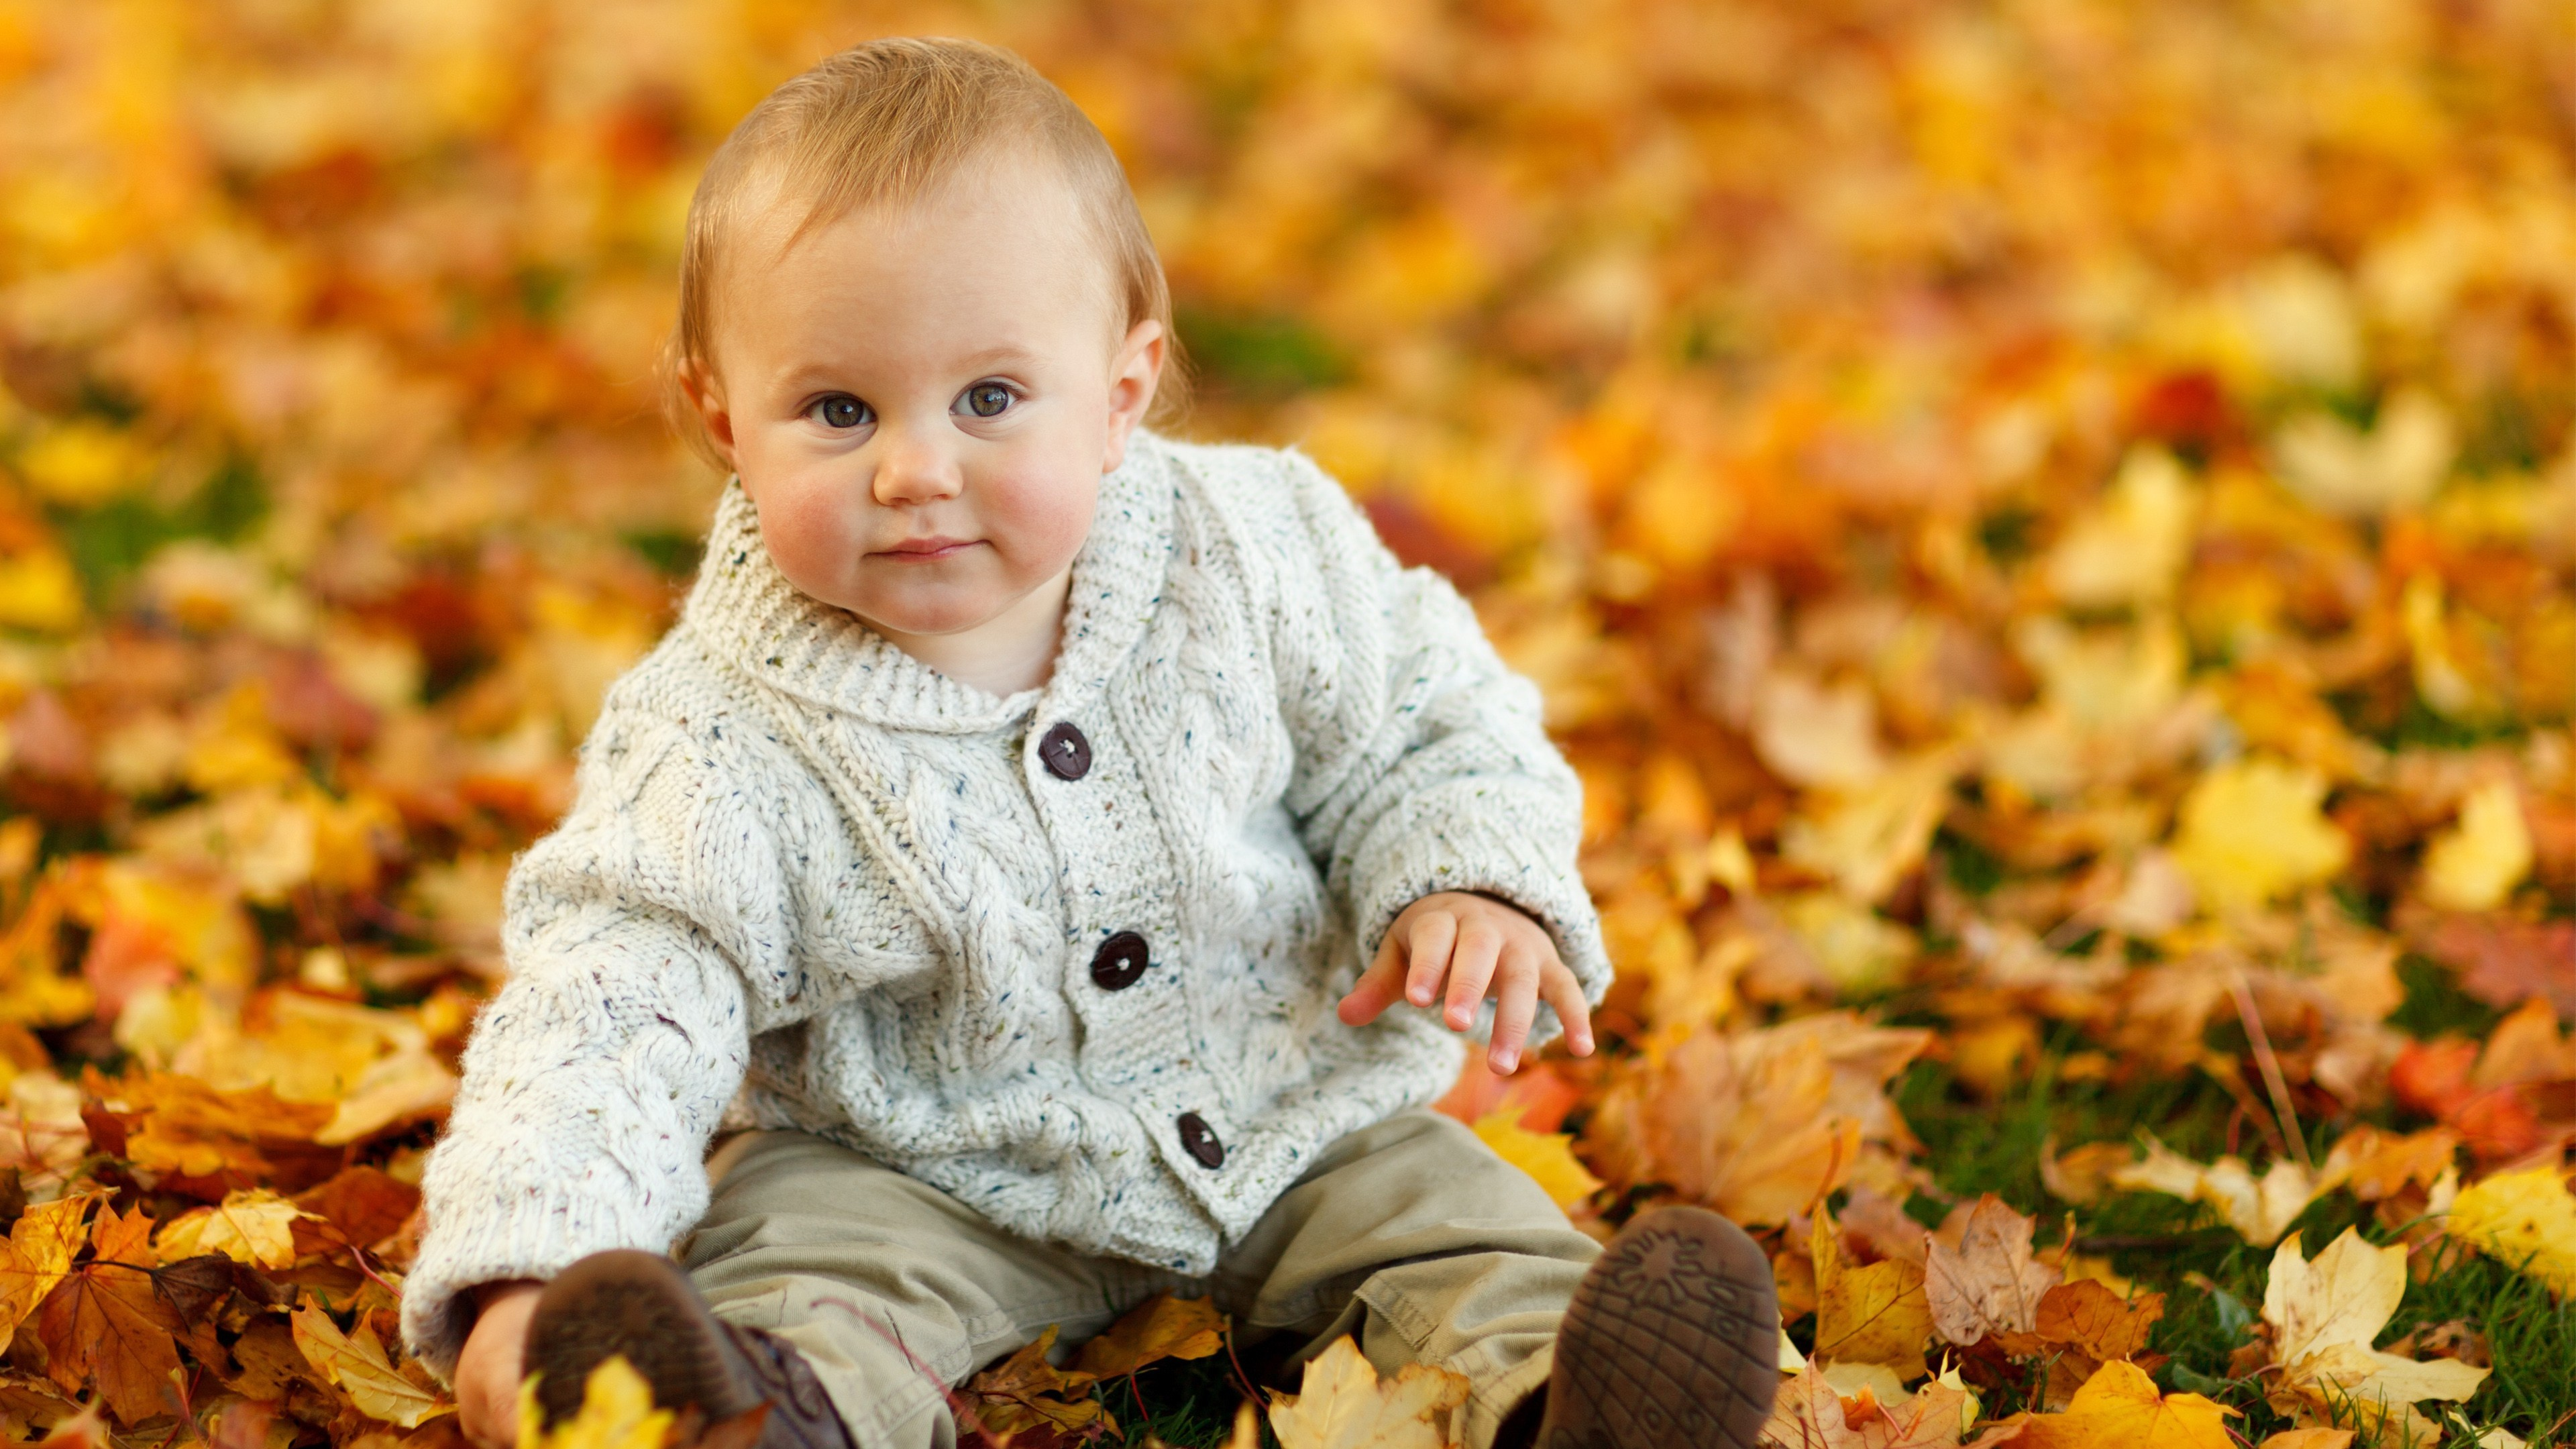 3840x2160 Cute Baby Boy Autumn Leaves